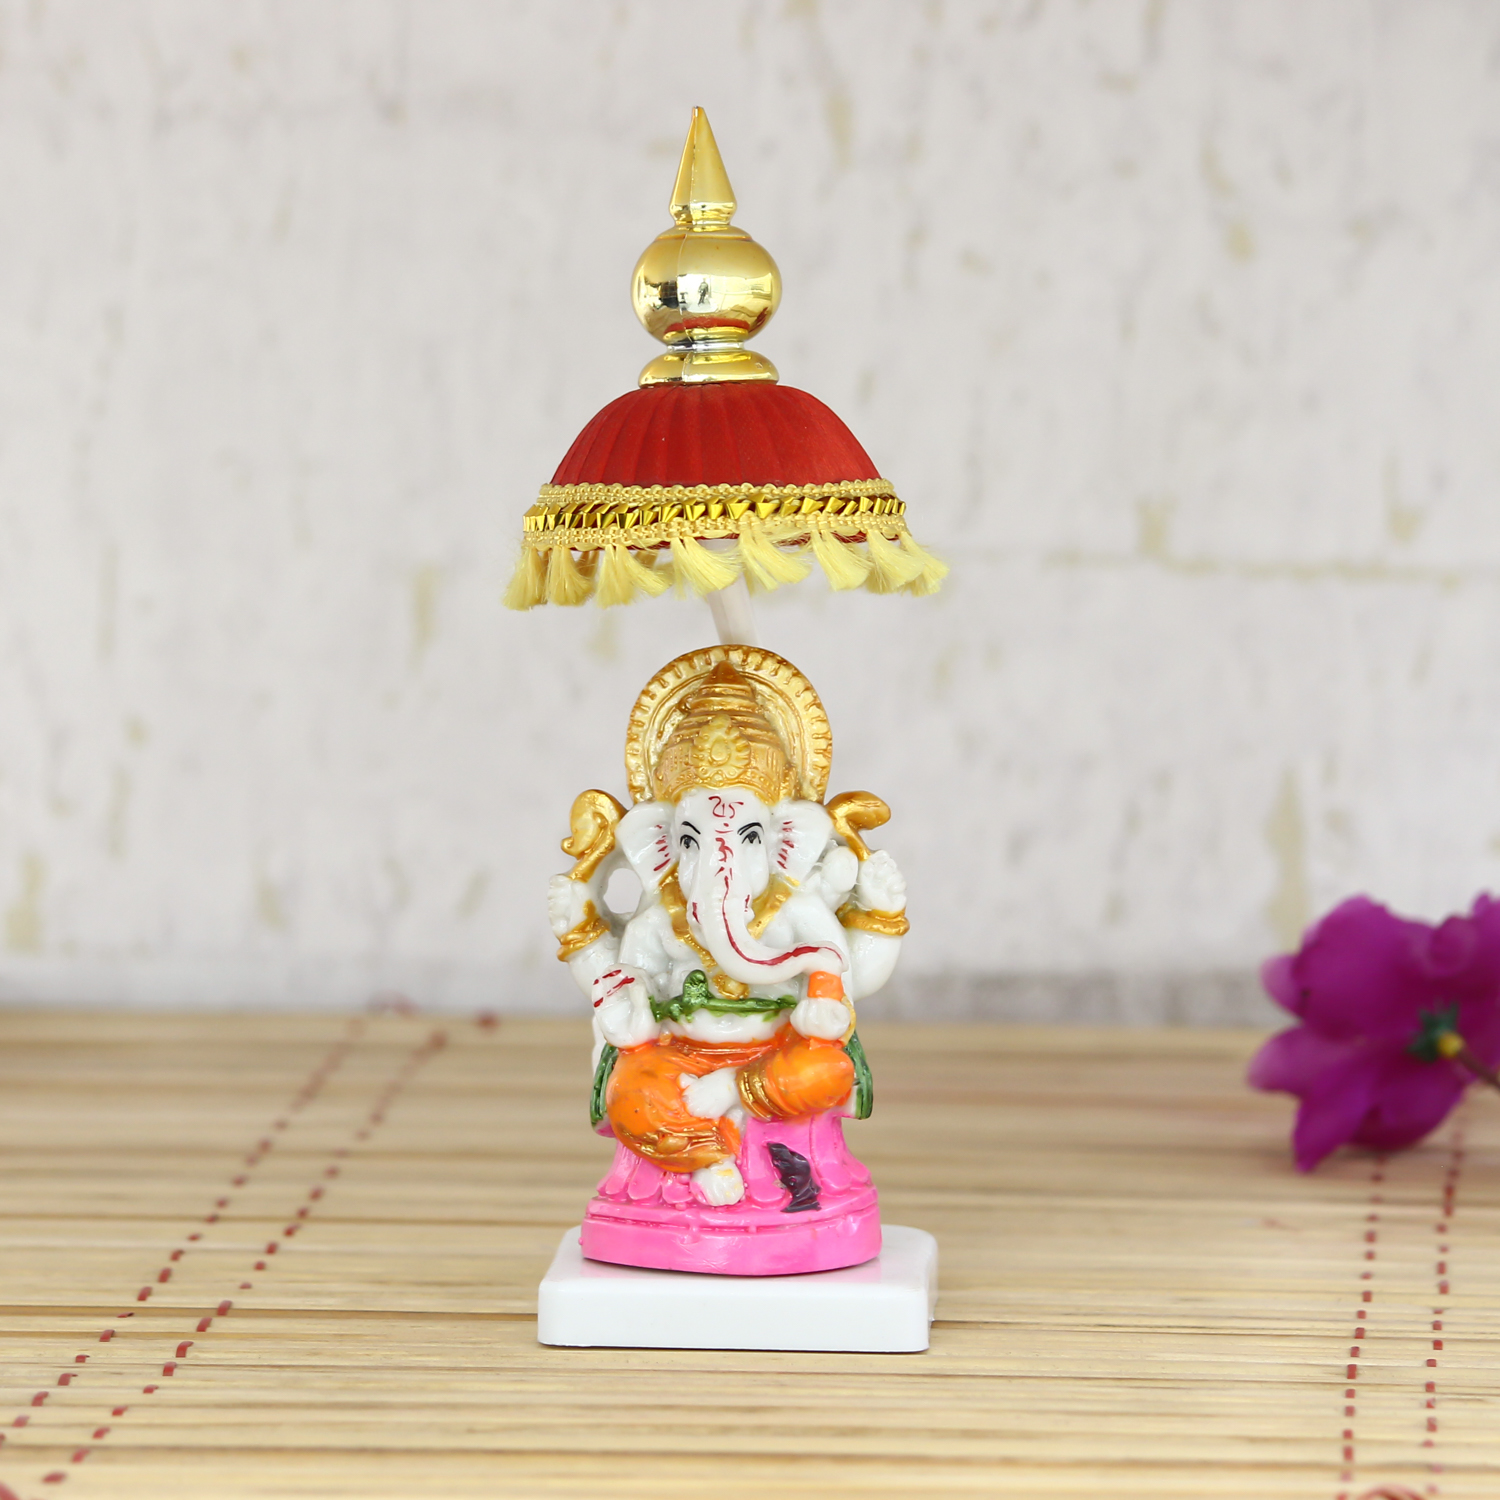 Decorative Lord Ganesha Showpiece with Chatri for Car Dashboard, Home Temple and Office Desks Indian Home Decor